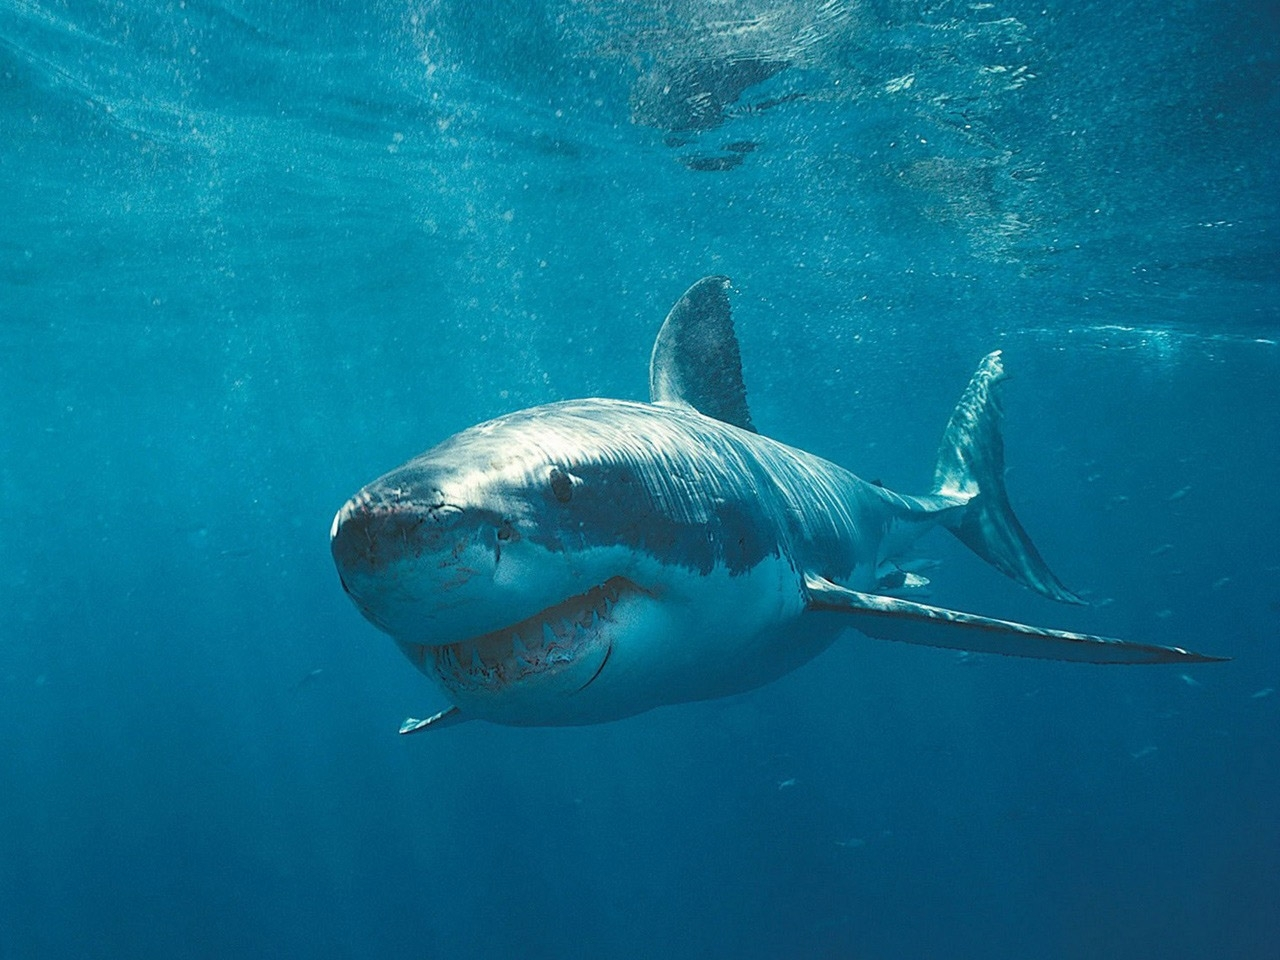 44616 download wallpaper Animals, Sharks screensavers and pictures for free